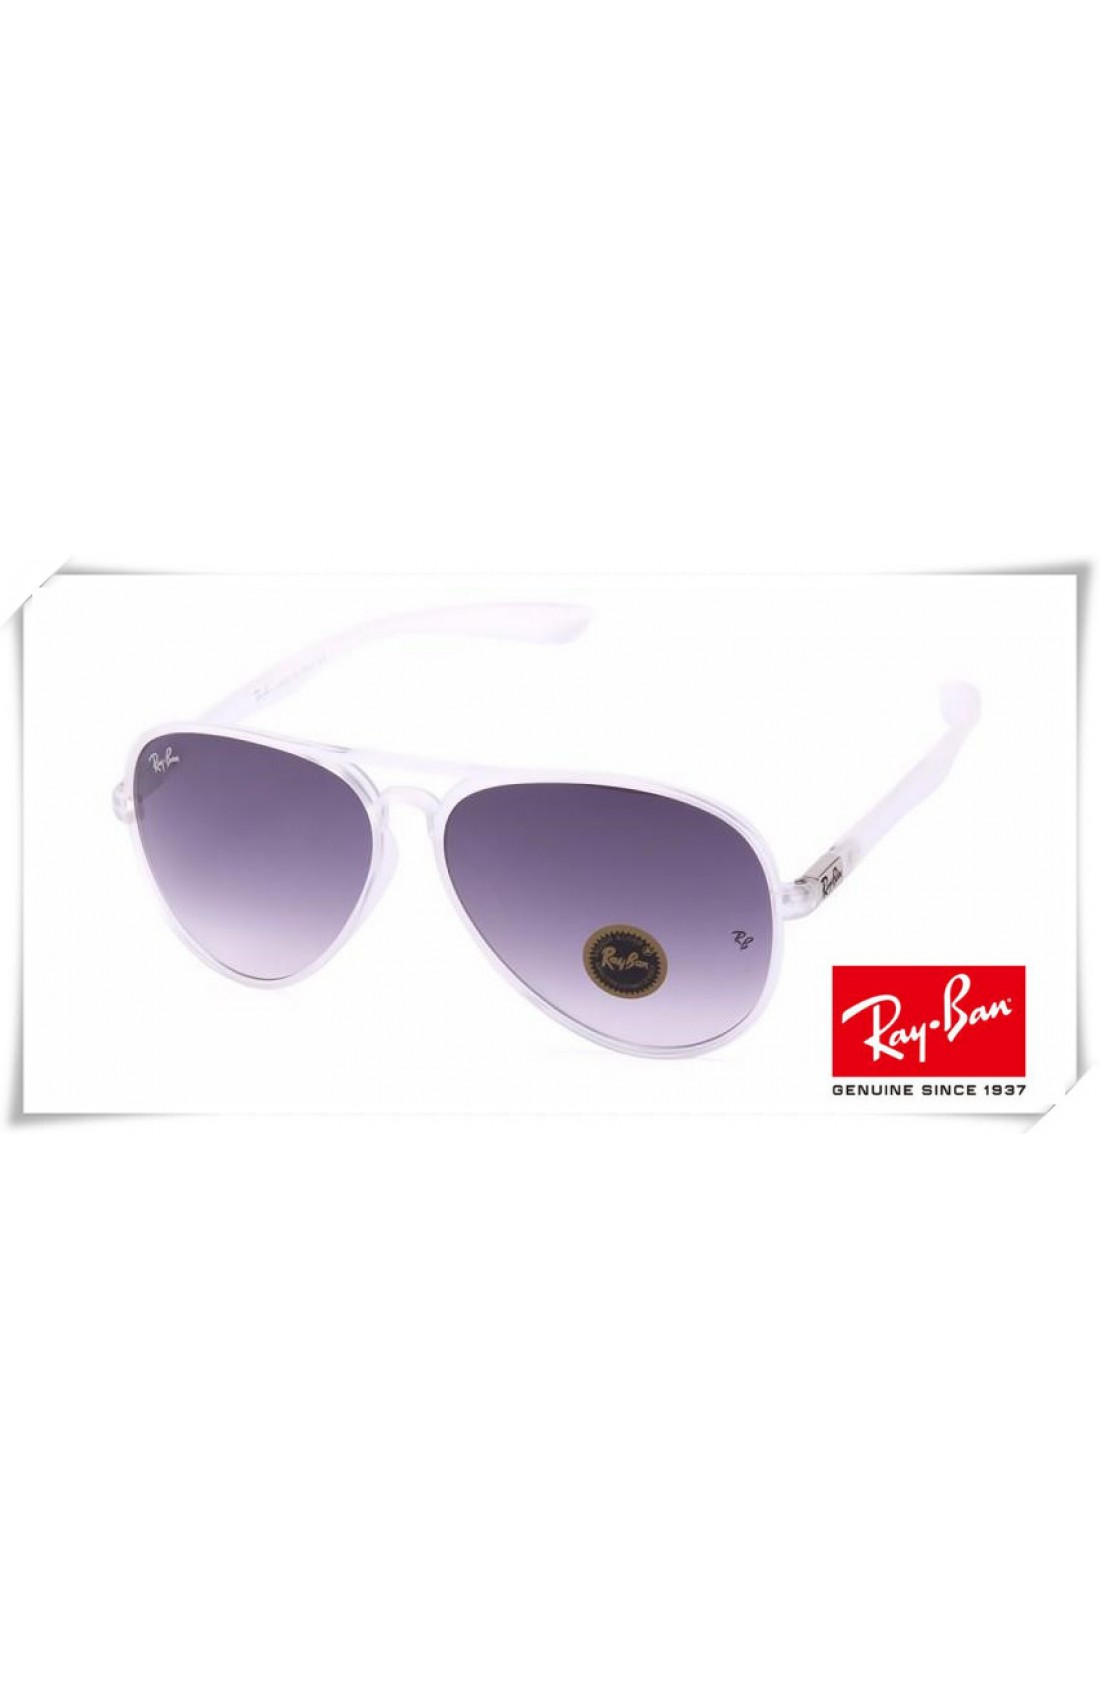 9f375b4c5dd Cheap Fake Ray Ban RB4180 Aviator Sunglasses Transparent Frame ...